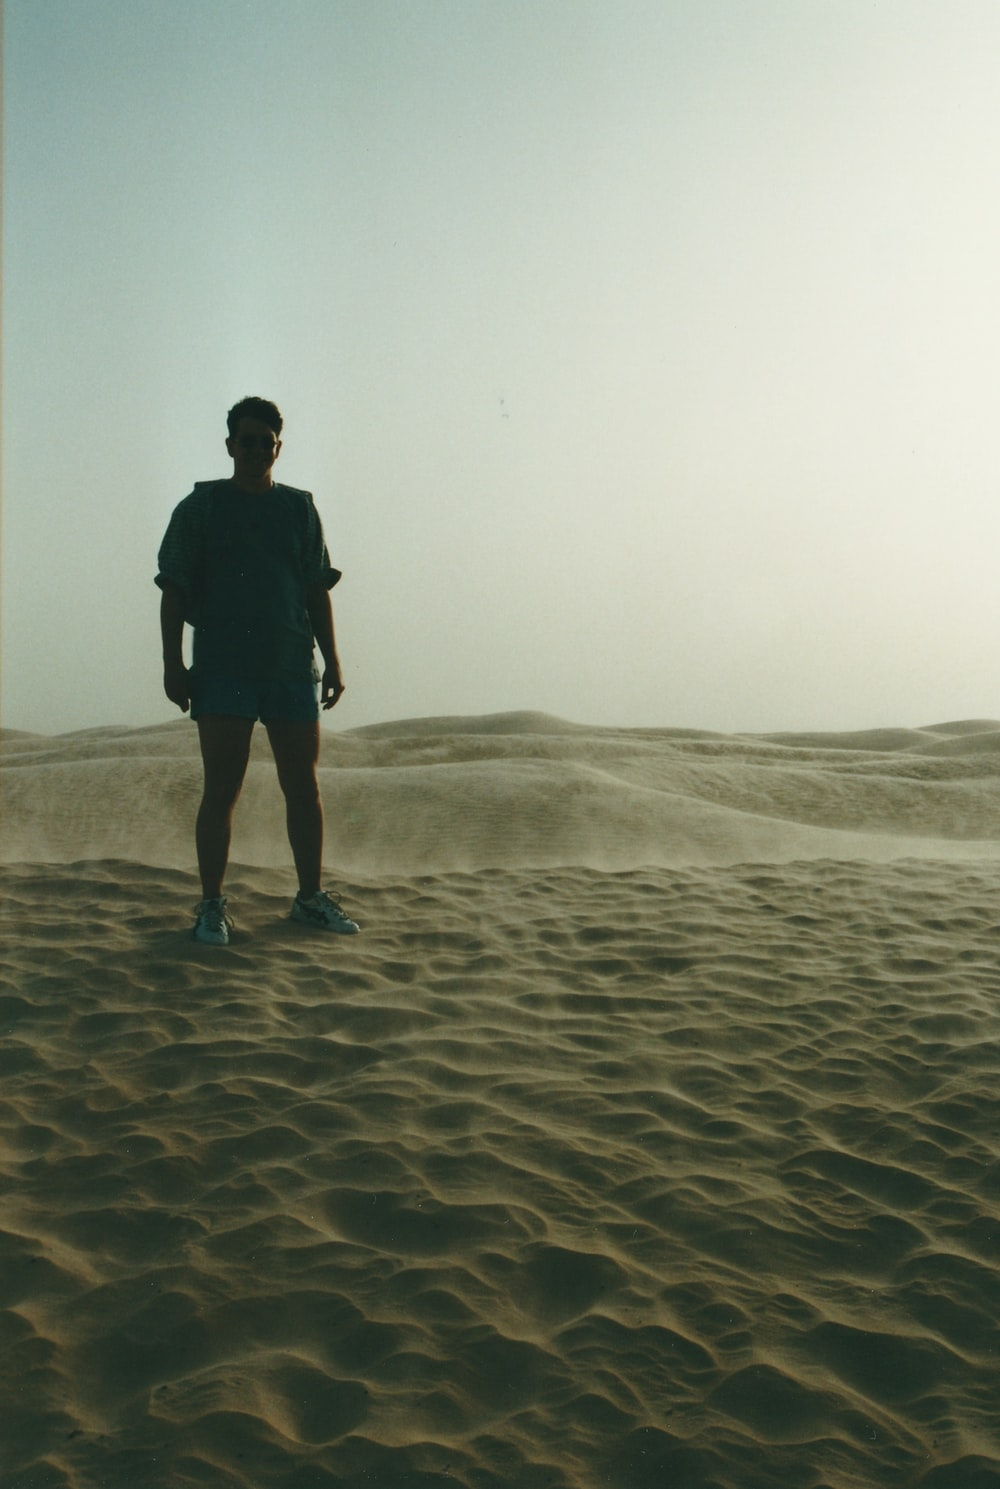 silhouette of man standing on sand